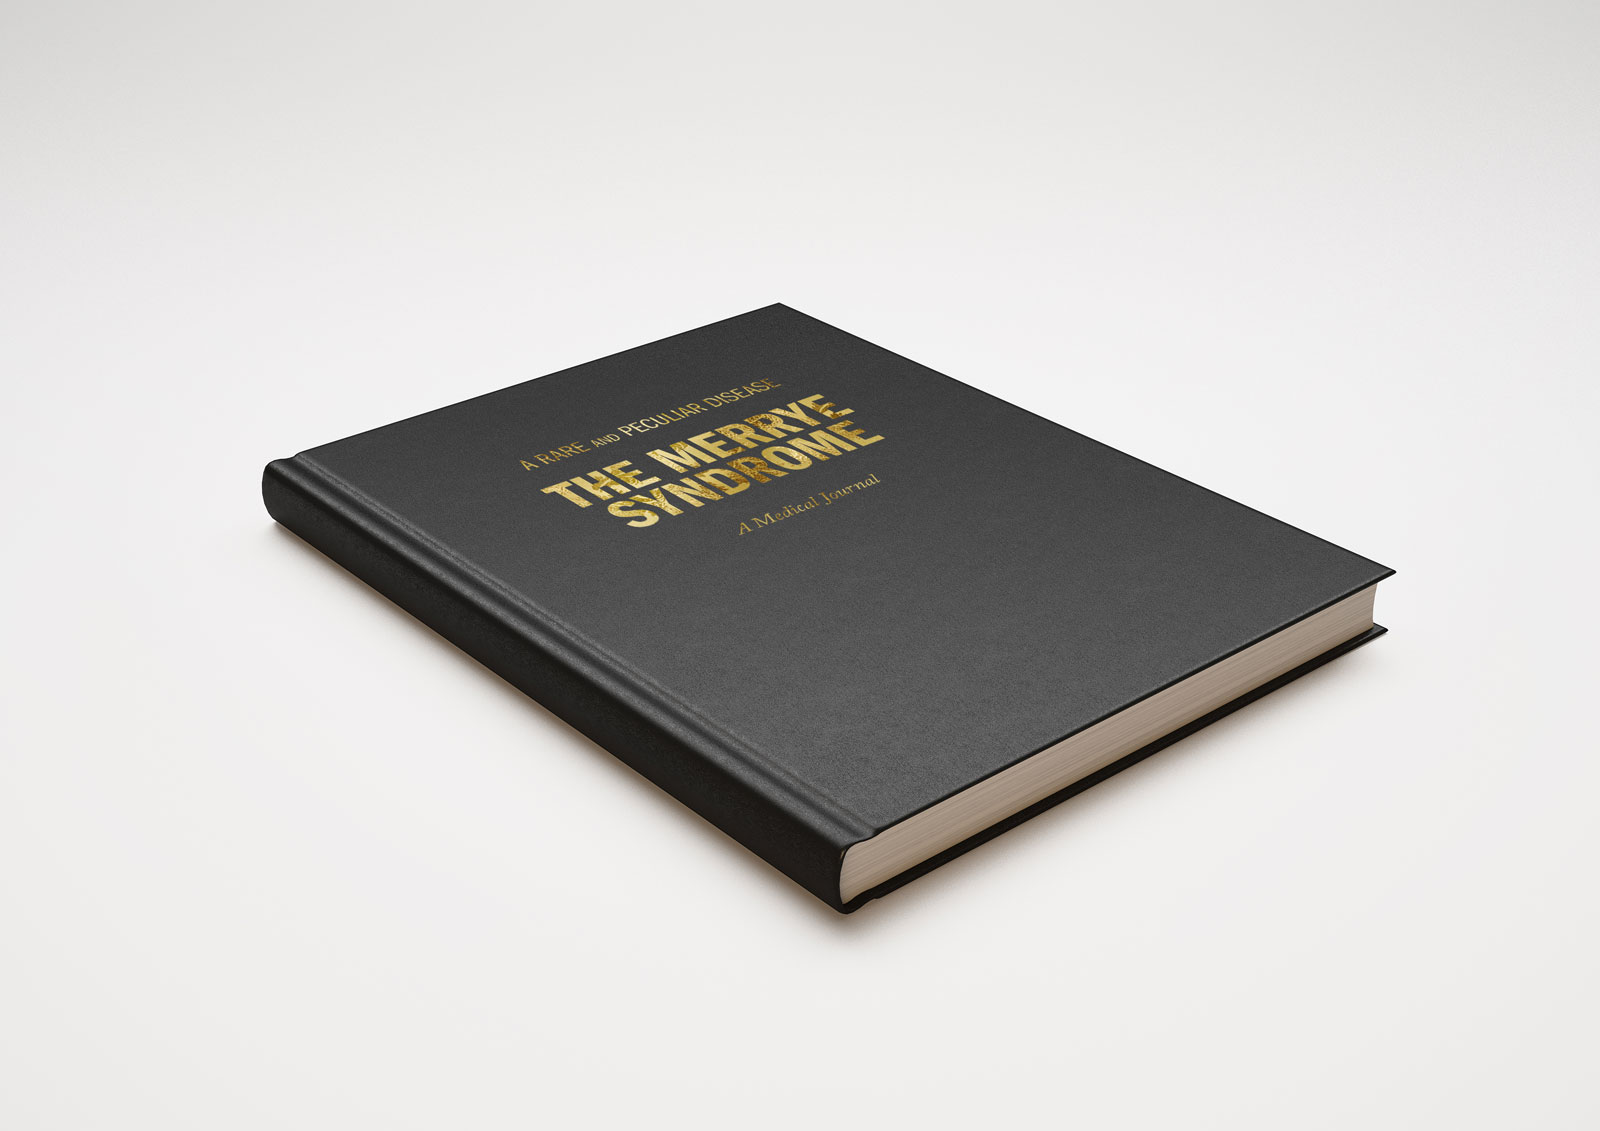 "For my book I chose to bind it in leather hardcover, following the book ""Dictionary of Rare and Peculiar Diseases"" that is introduced at the beginning of the film."